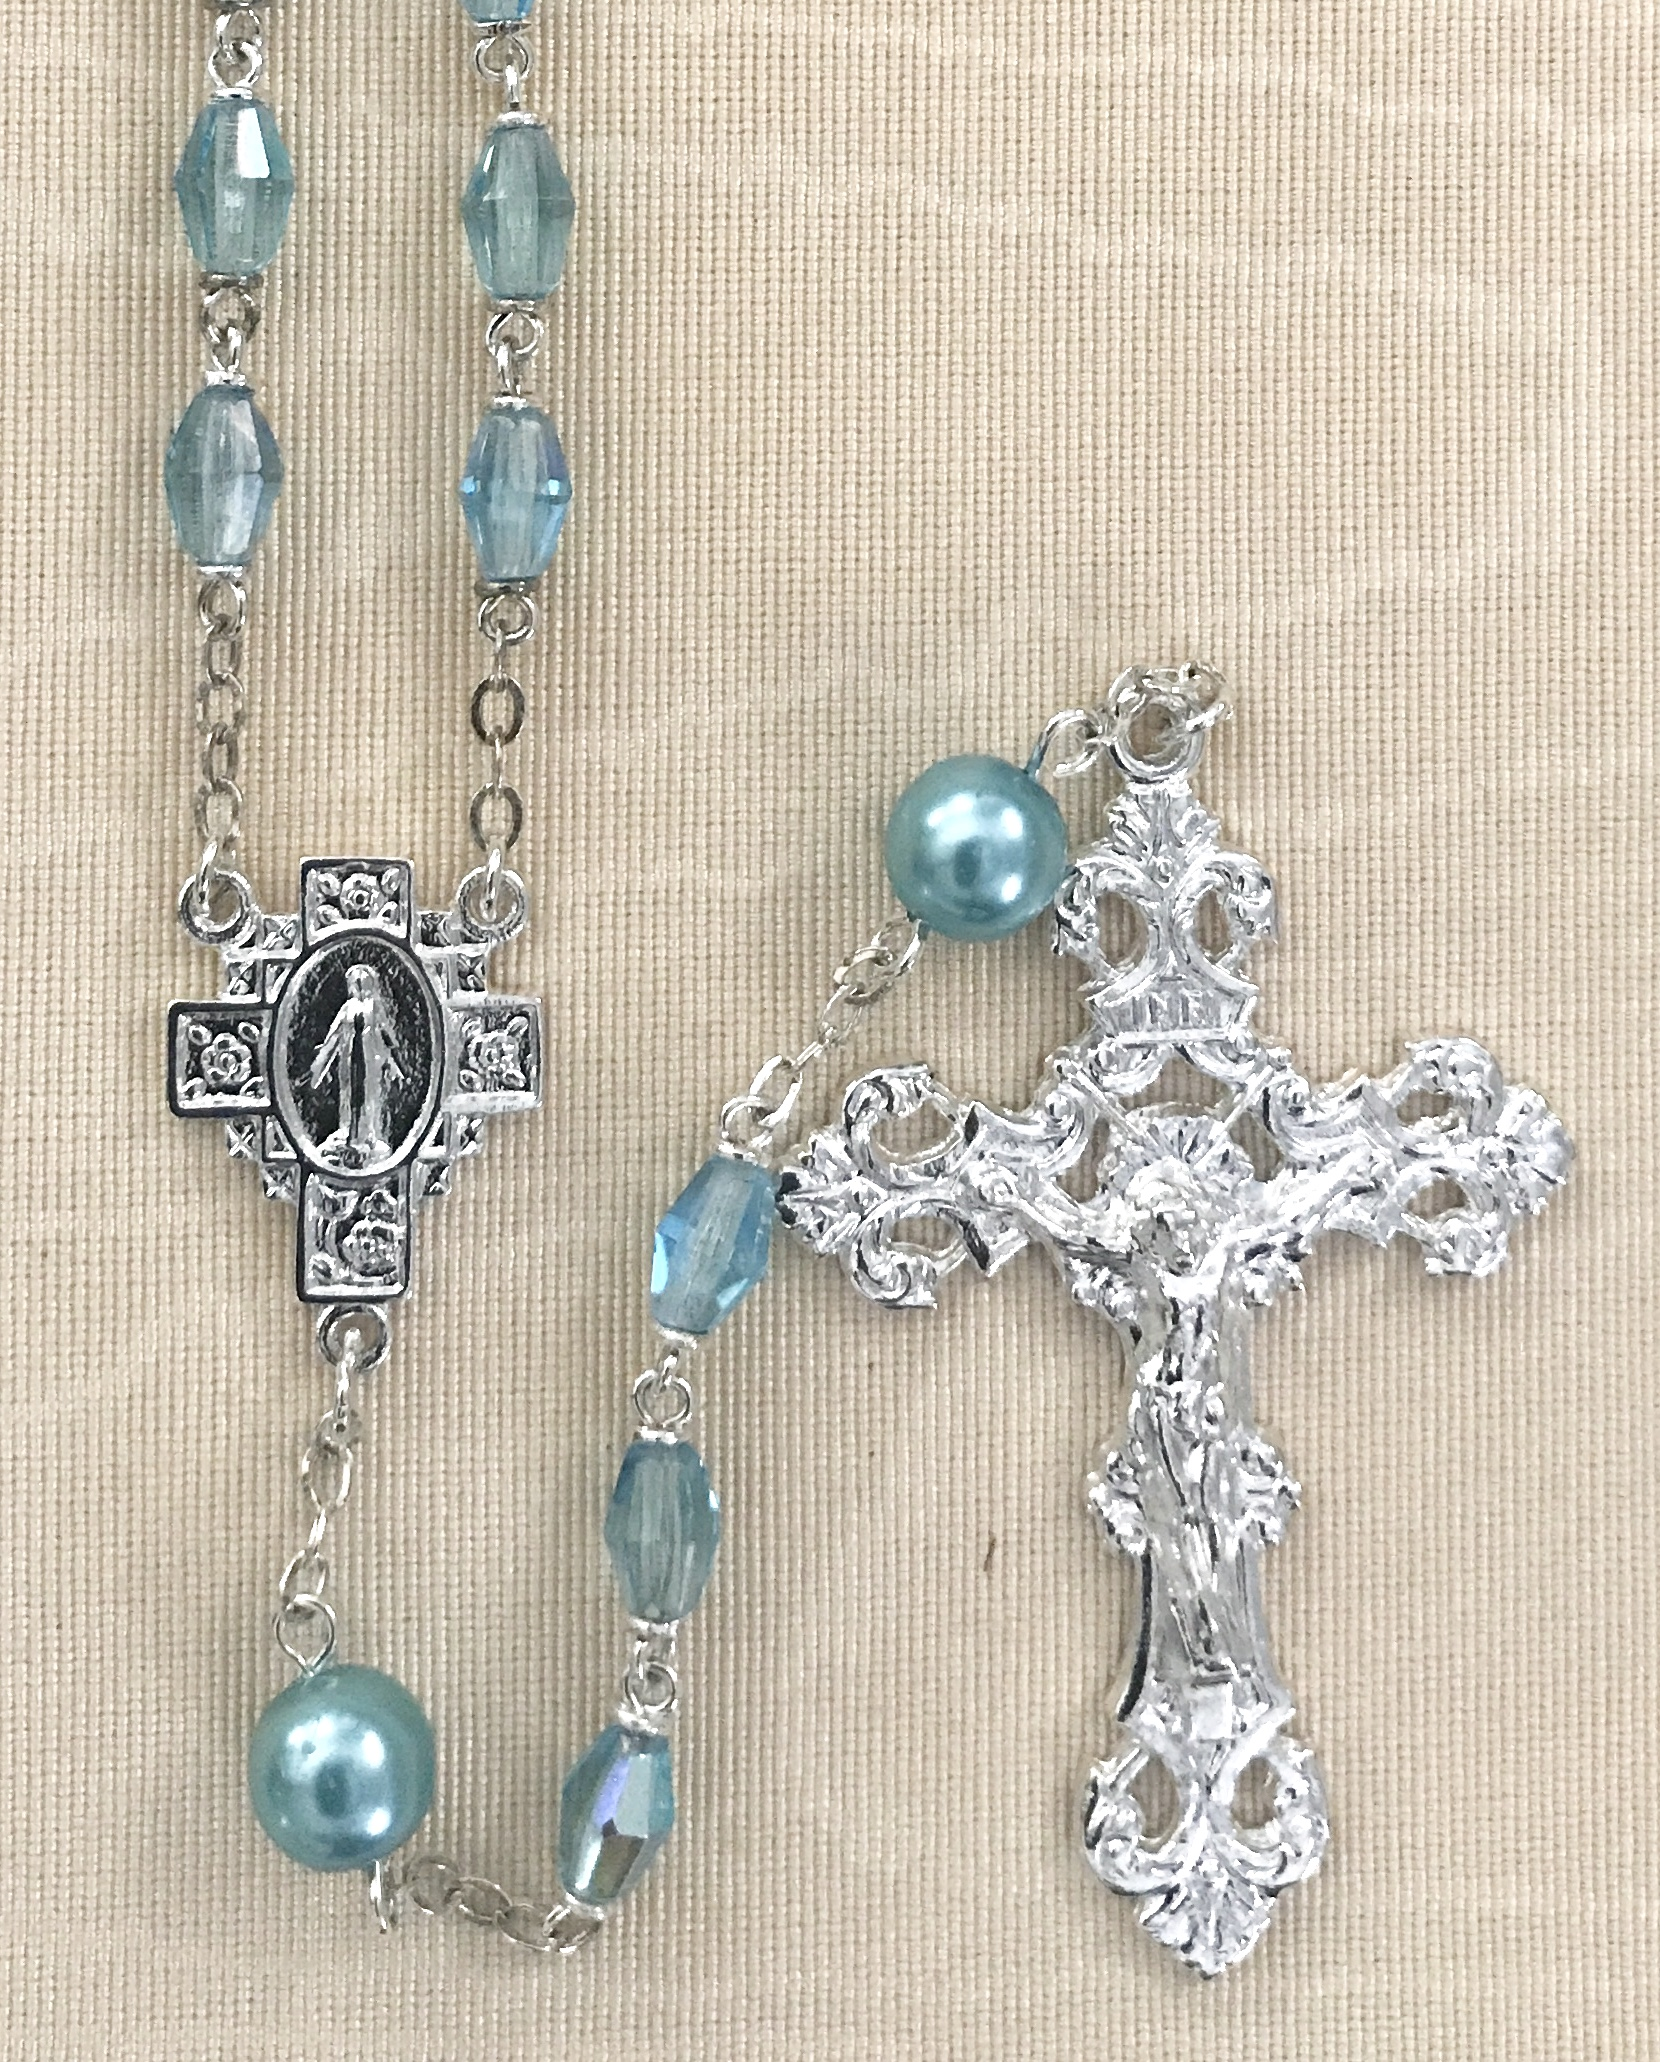 6x8mm AQUA LOC LINK WITH AQUA OUR FATHER BEADS STERLING SILVER PLATED ROSARY GIFT BOXED